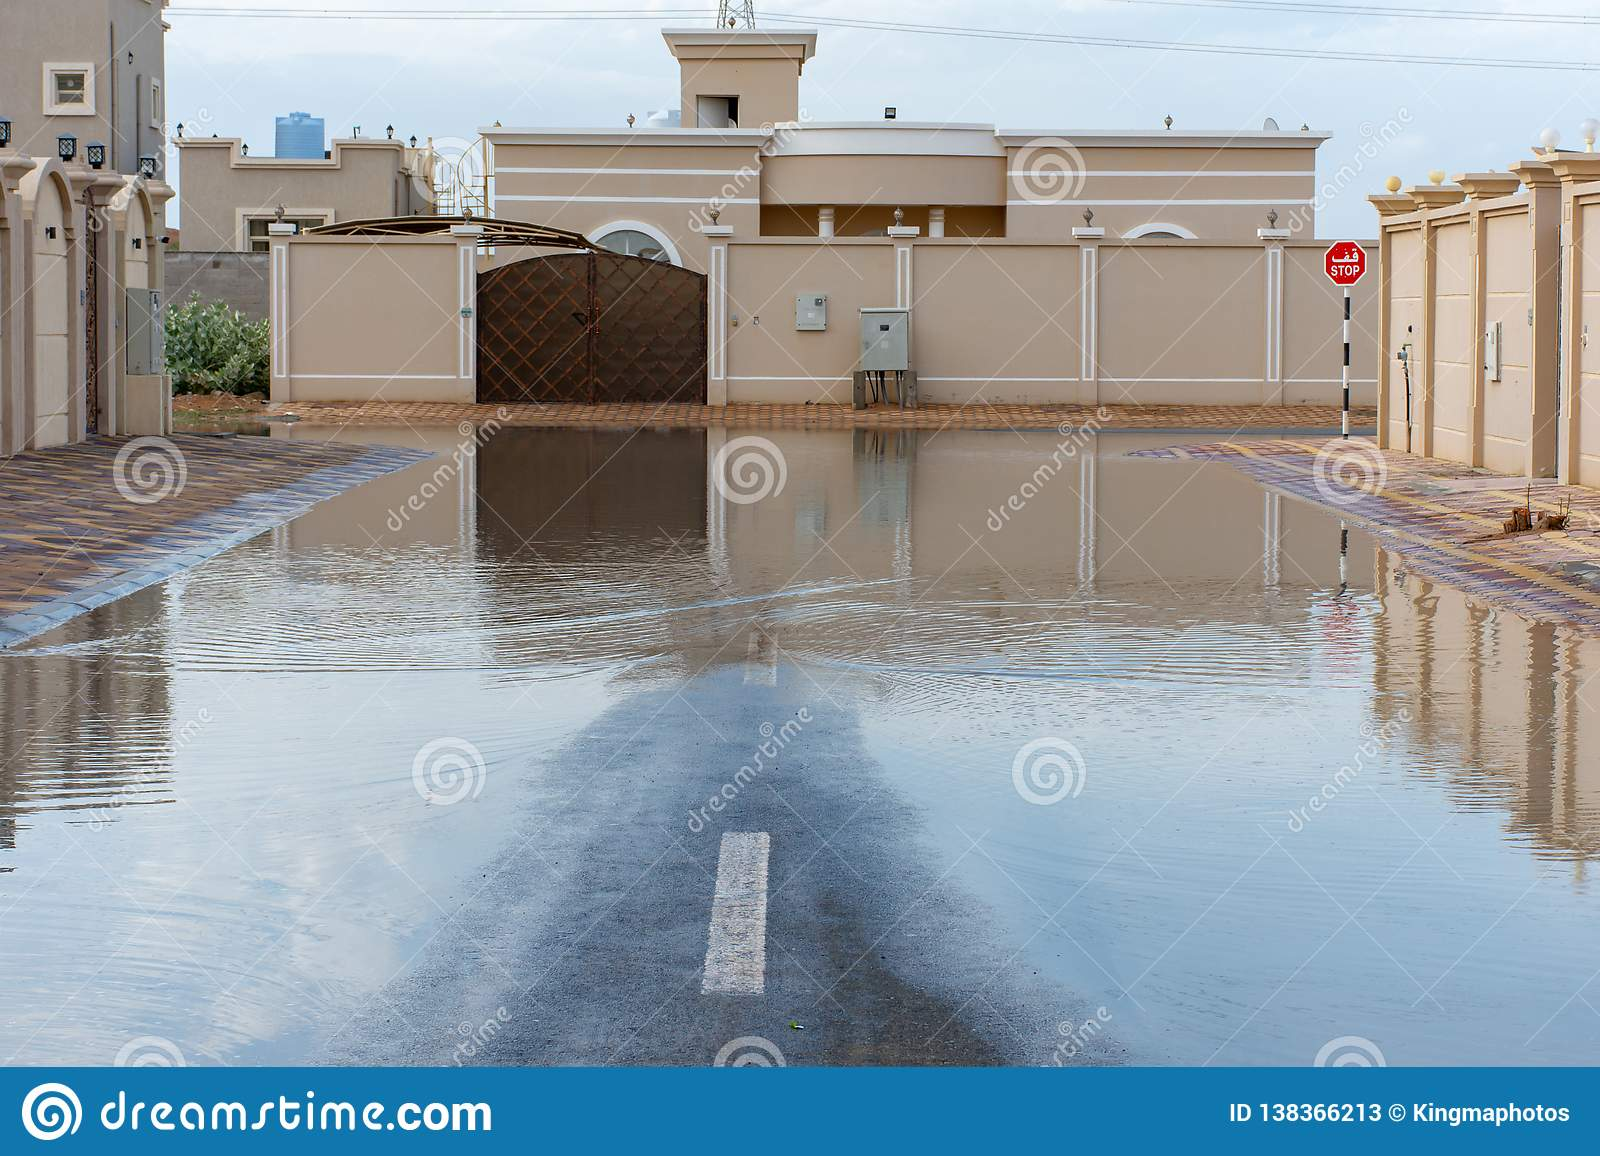 Streets flooded in the United Arab Emirates after a rainstorm